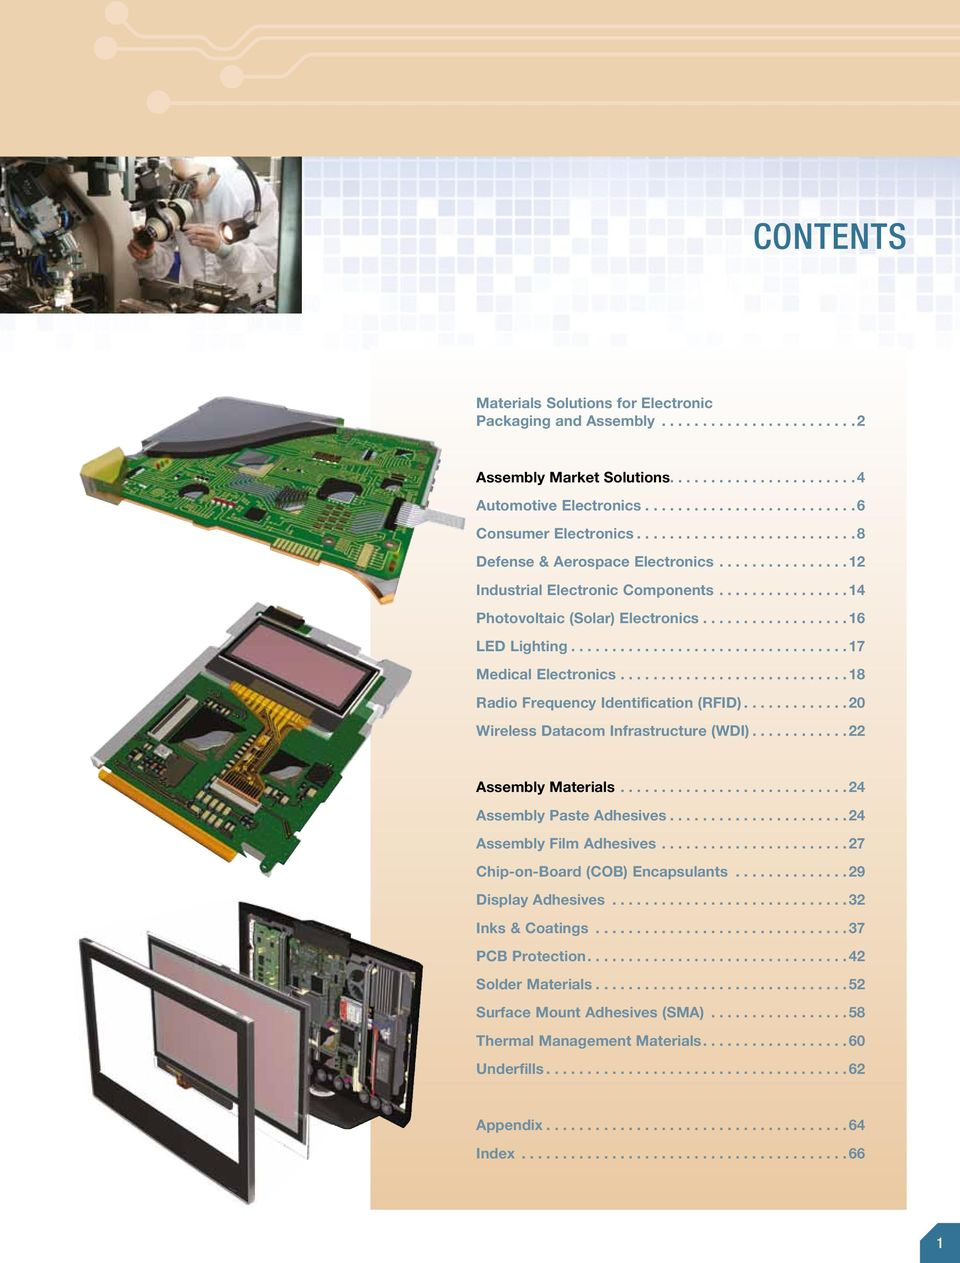 Across The Board Around Globe Americas Europe Asia Pacific Pdf Oem Printed Circuit Assembly Service Include Smt Dip Cob Wire 18 Radio Frequency Identification Rfid20 Wireless Datacom Infrastructure